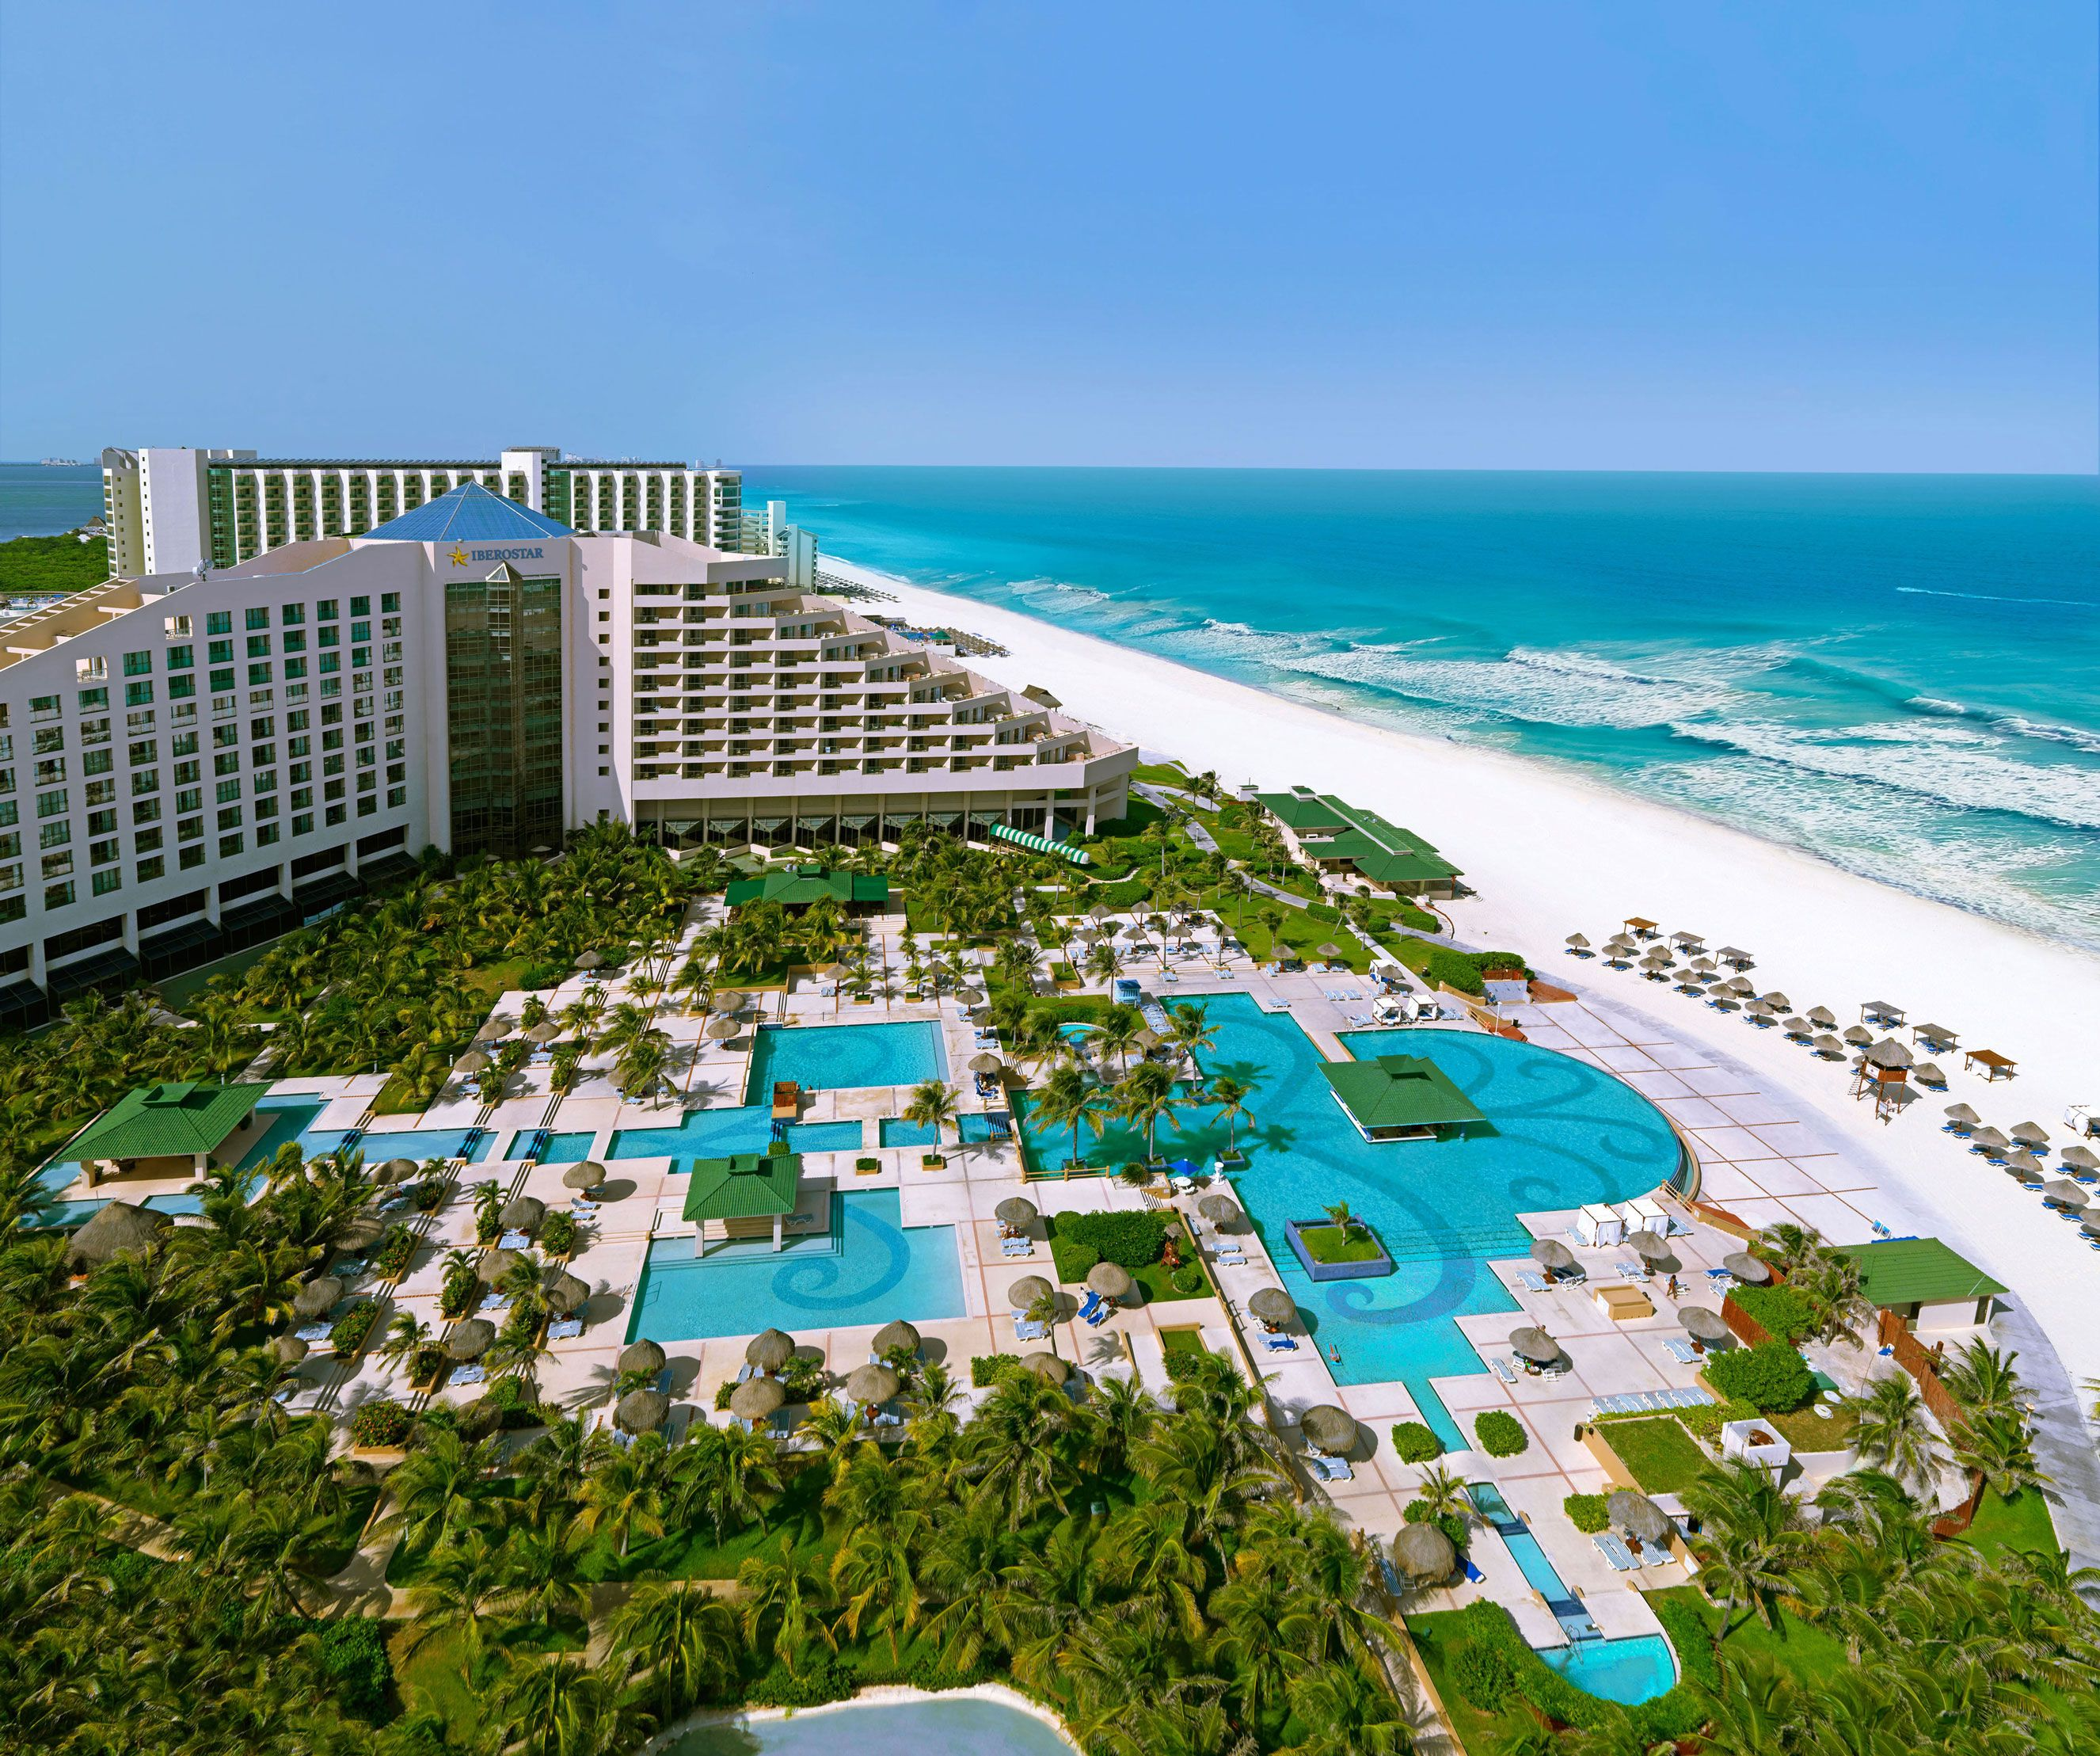 Iberostar Cancun Is A Top All Inclusive Wedding Honeymoon Resort Make Your Caribbean Destination Planning Easy With Honeymoons Inc